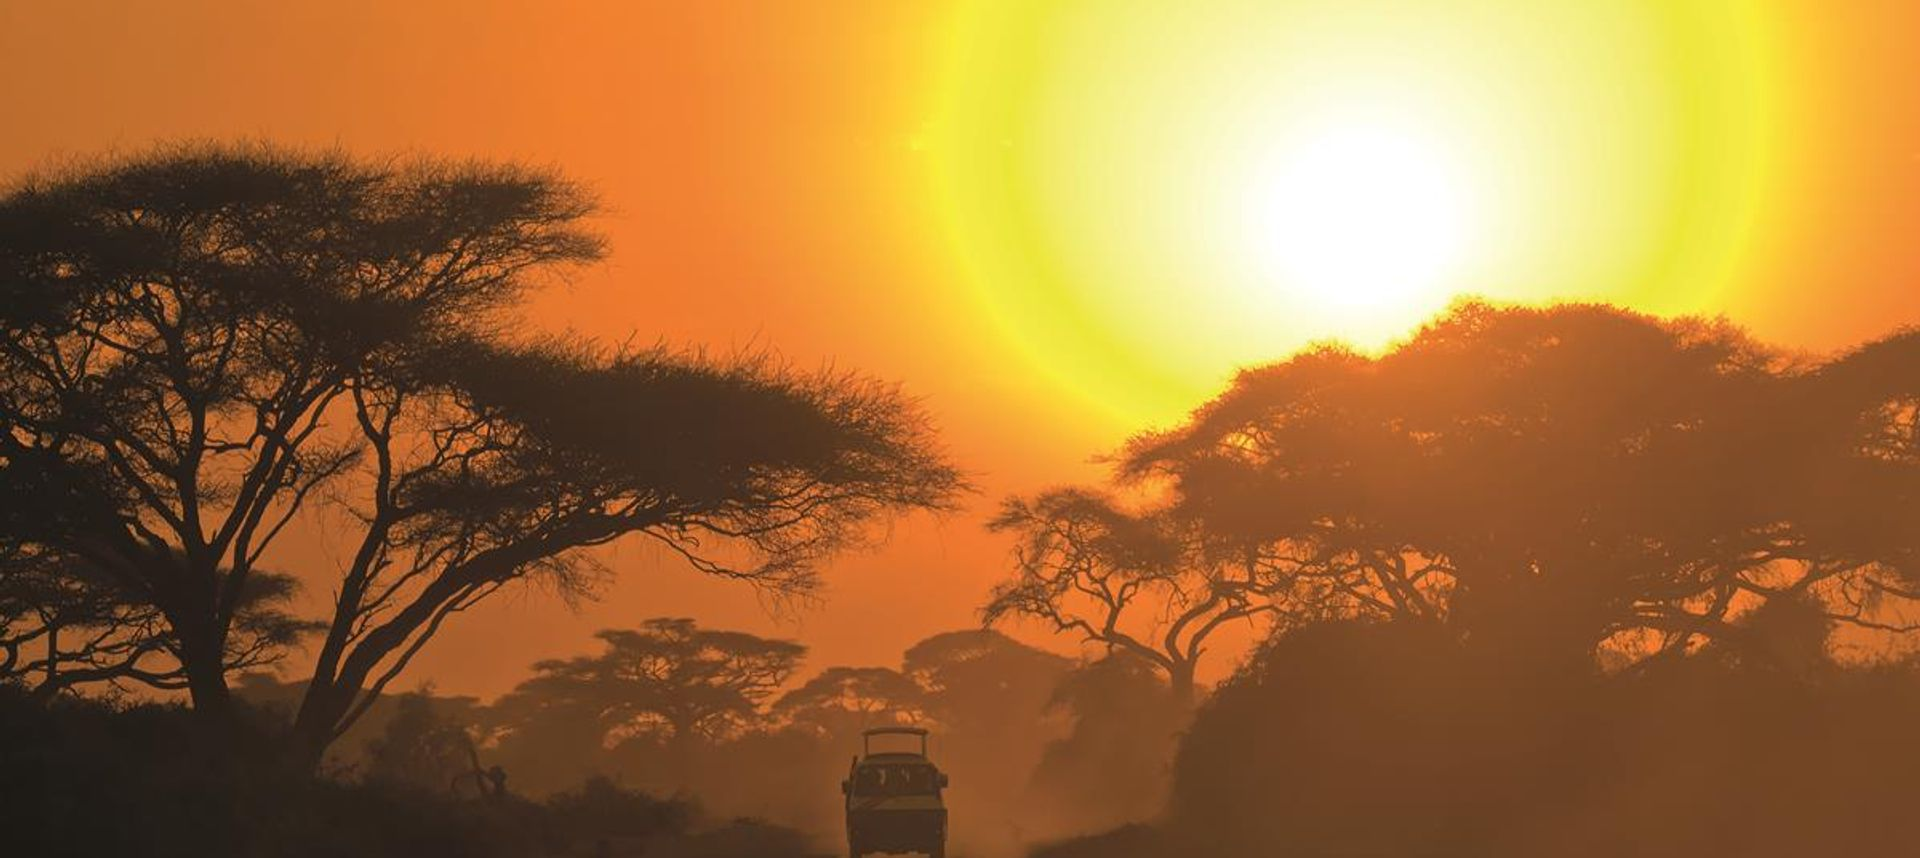 Get unparalleled access to tempting destinations with an overland trip